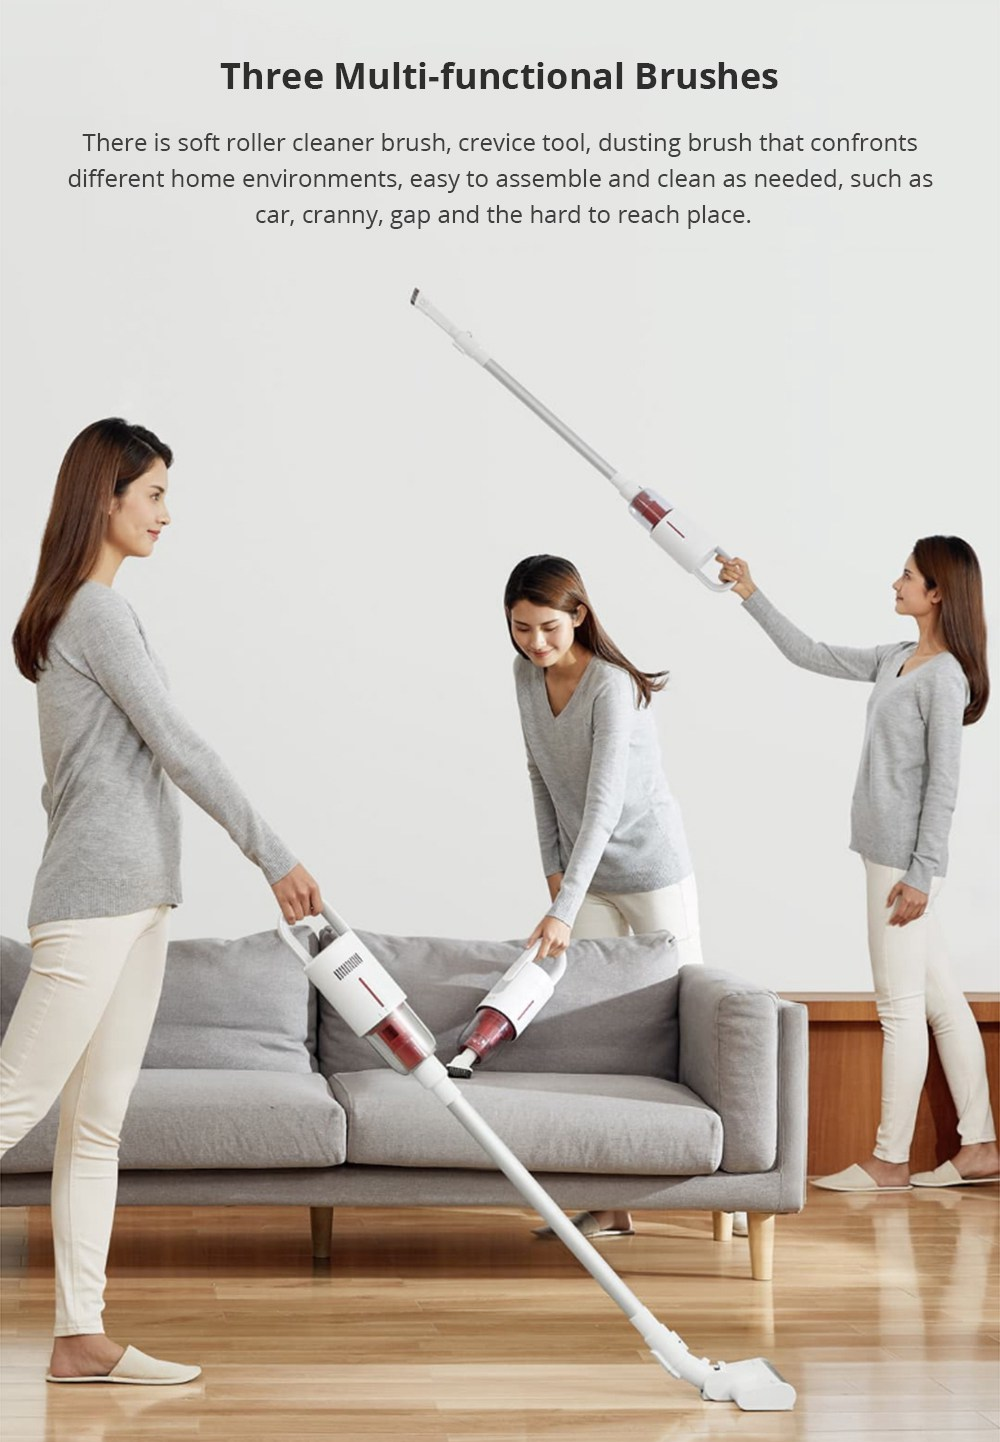 Xiaomi Deerma VC20S Upright Cordless Stick Vacuum Cleaner Sound-absorbing Cotton Anti-winding Hair - White